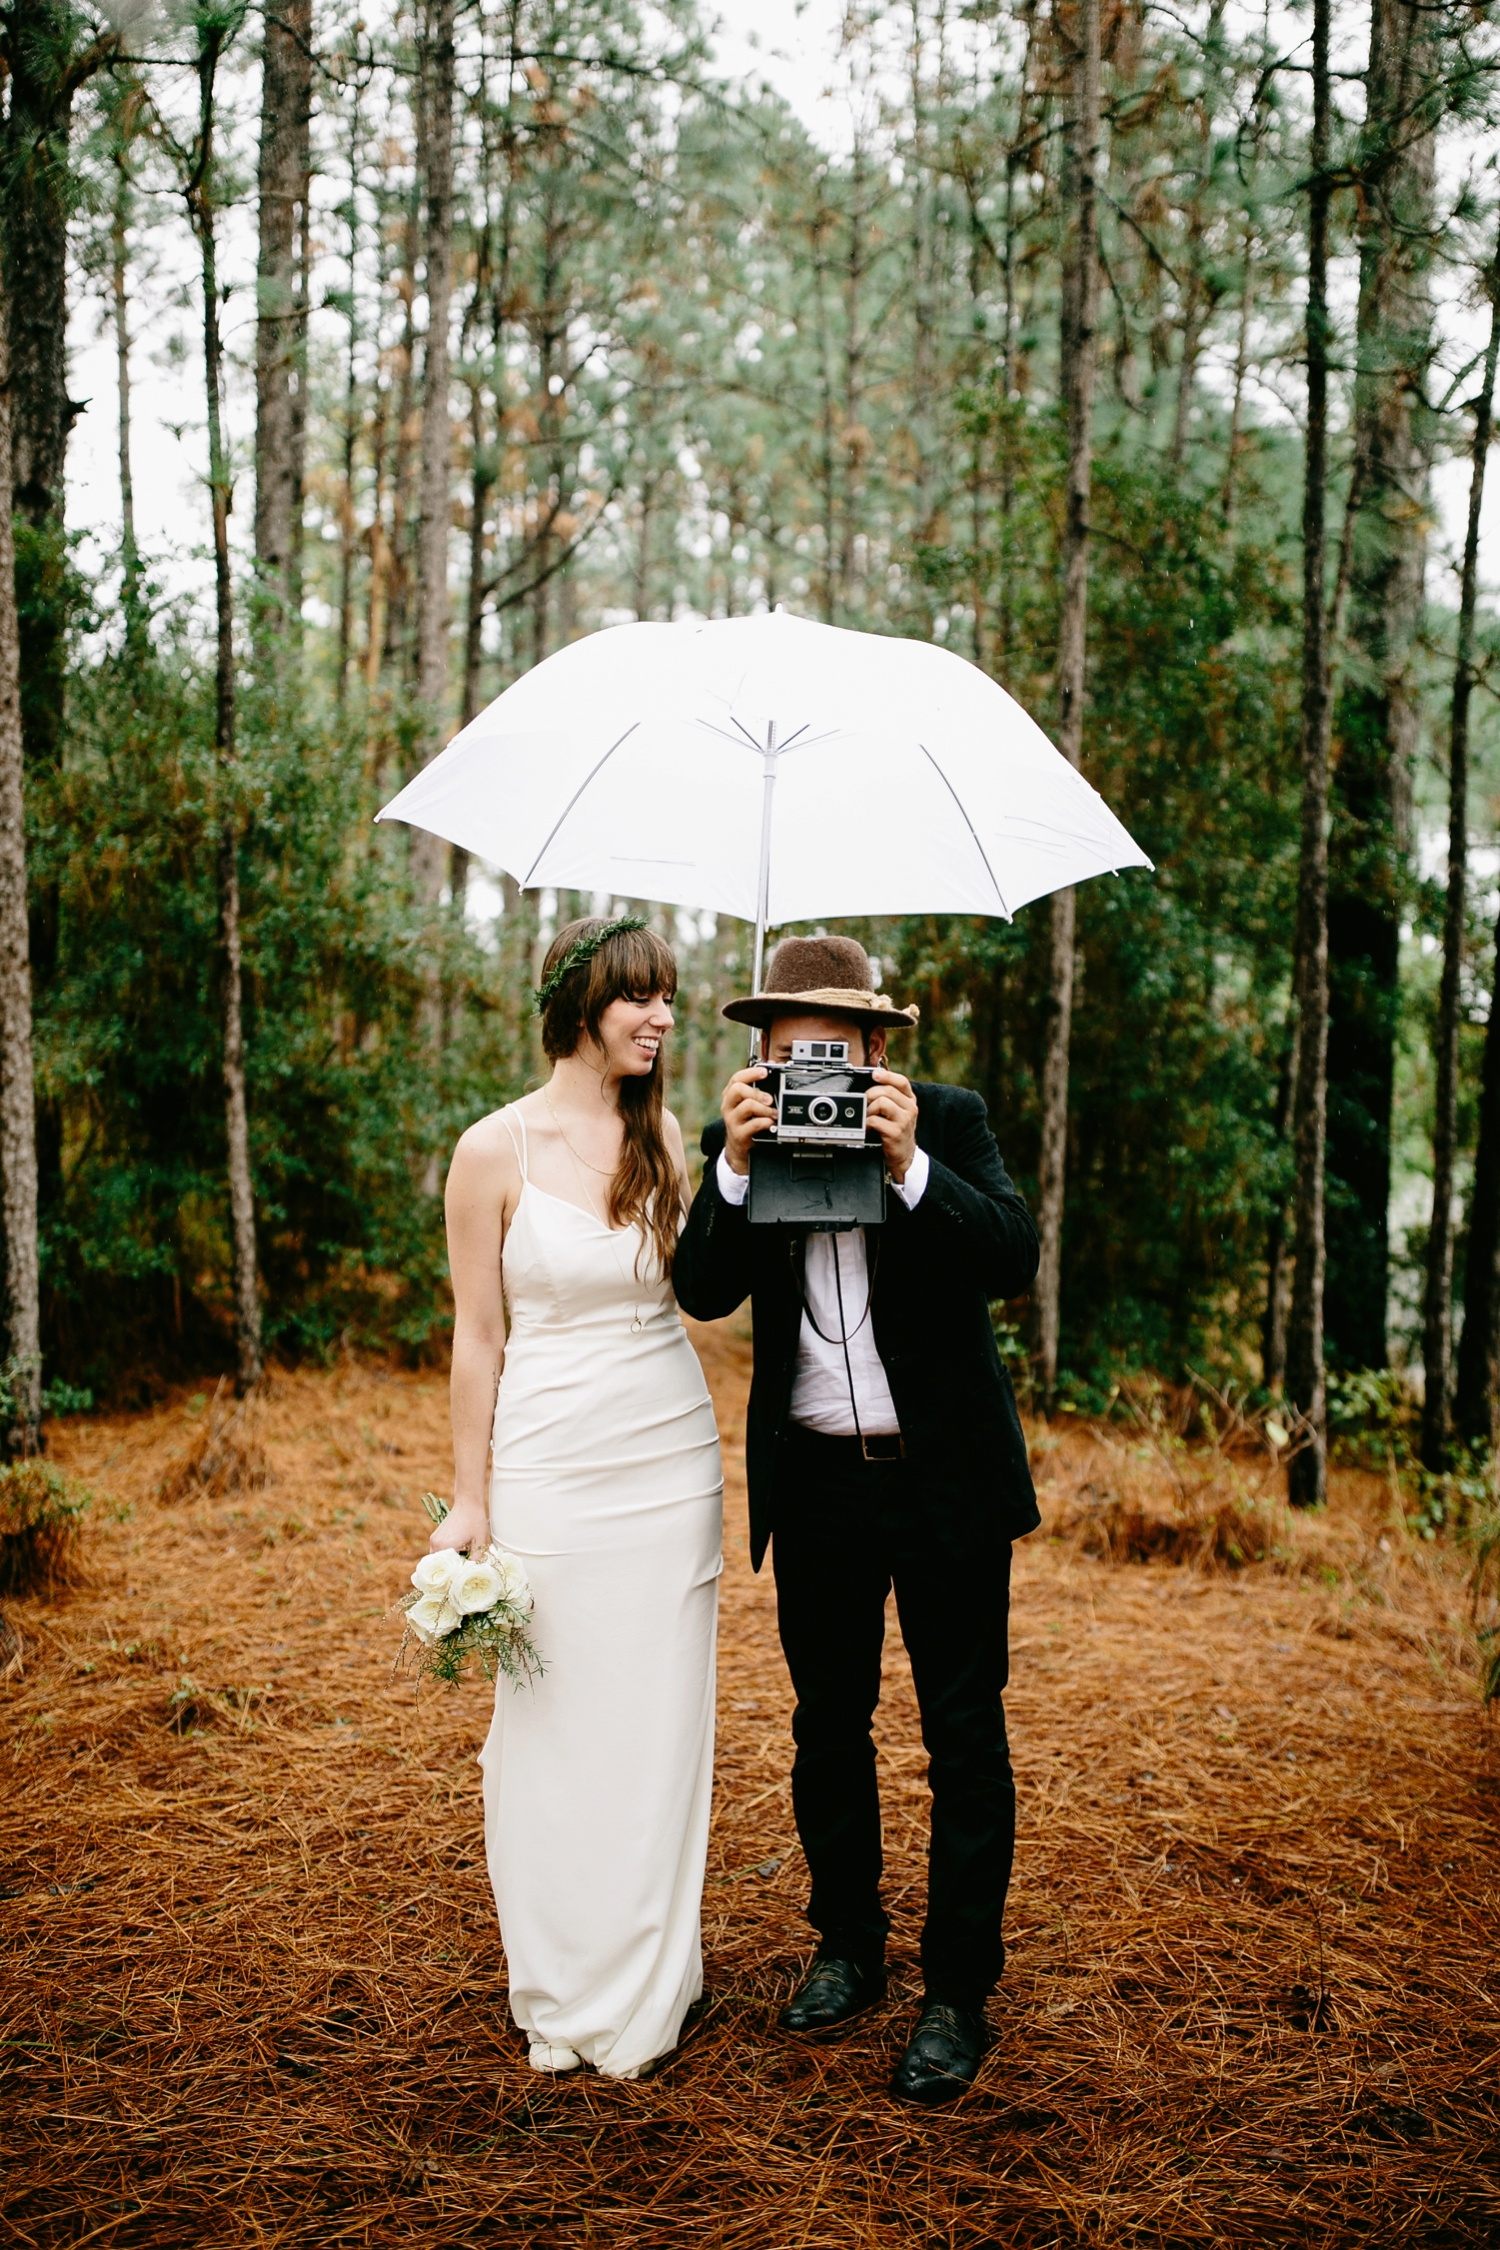 rainy-wedding-pictures-050